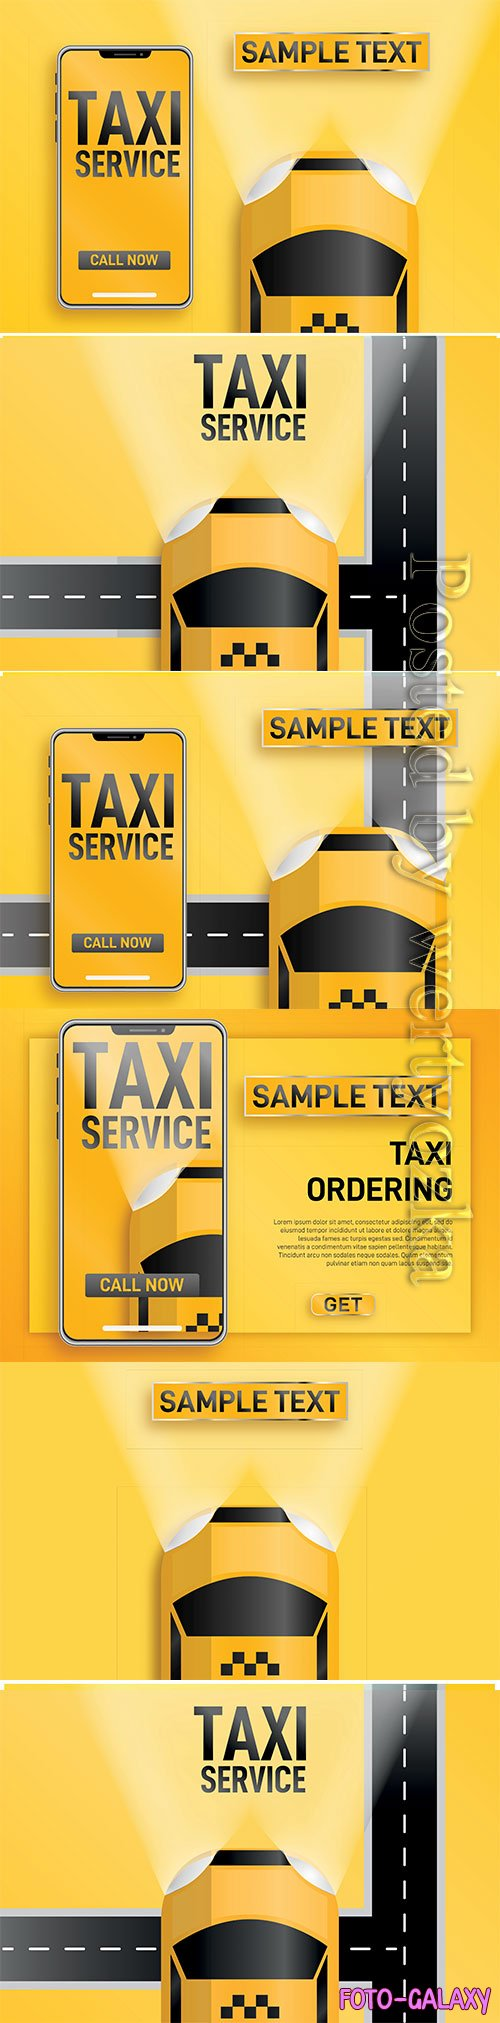 Taxi service online vector illustration